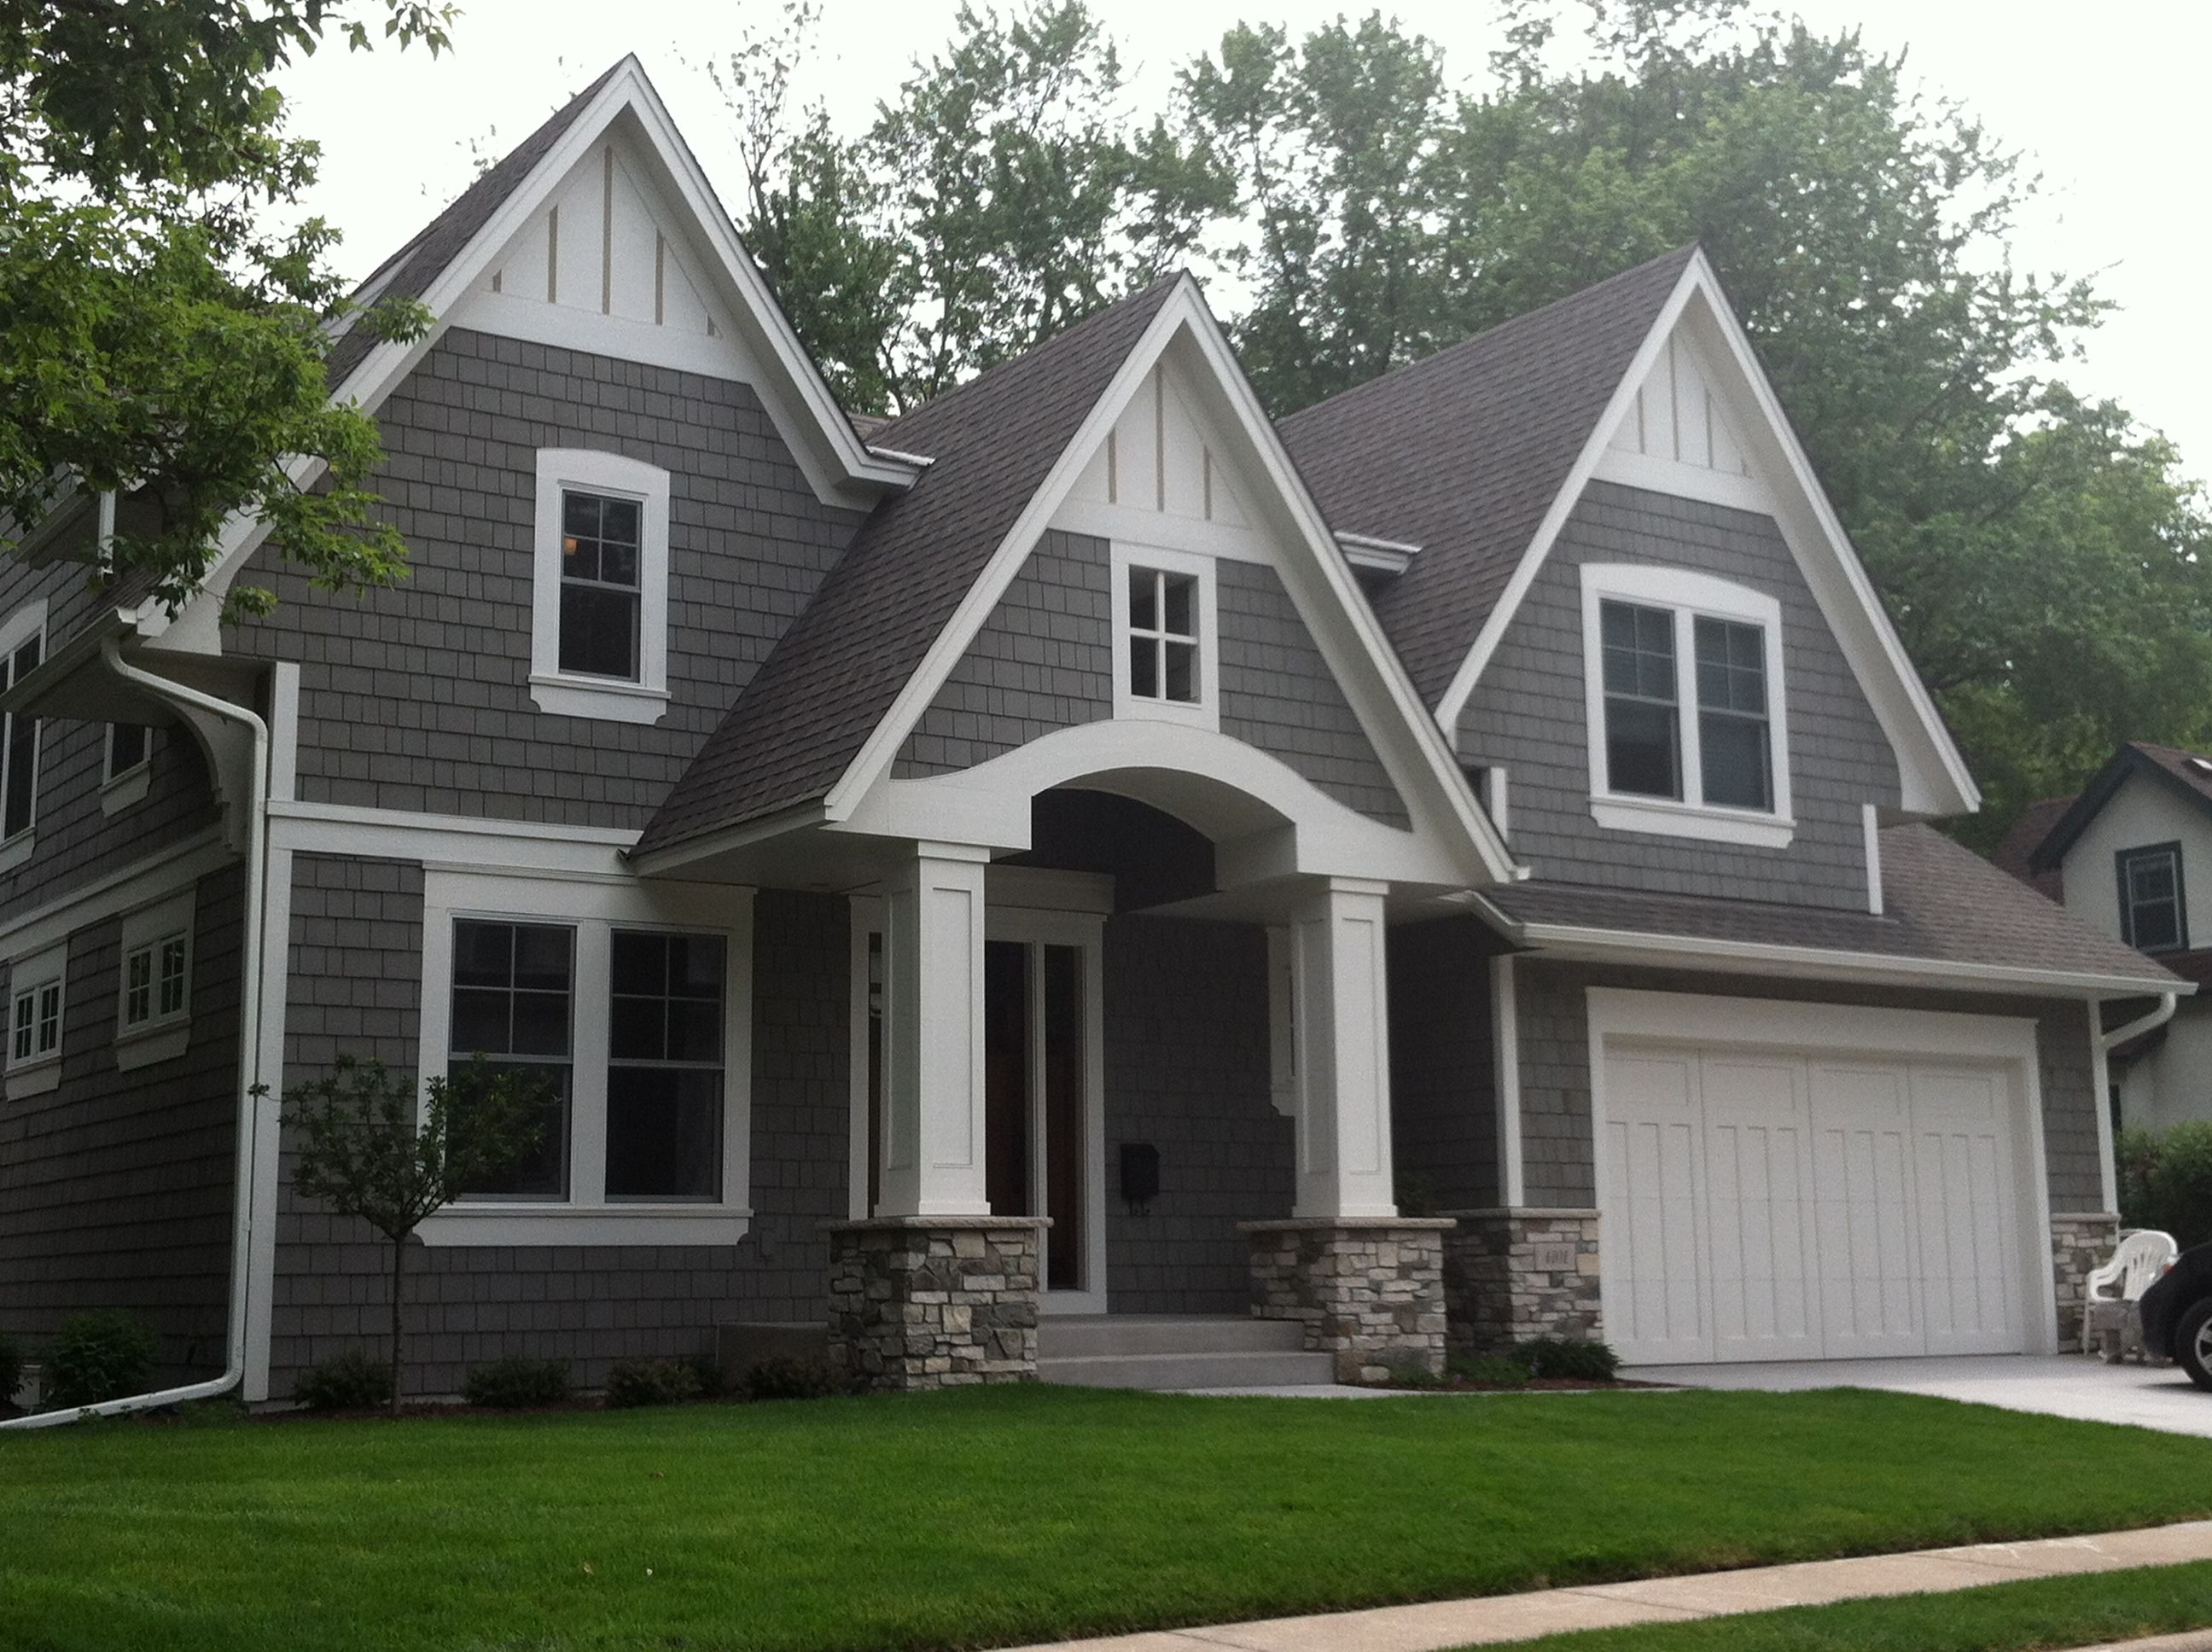 Exterior house color schemes barrier exteriors minnesota home siding exterior services - Exterior paint for home minimalist ...